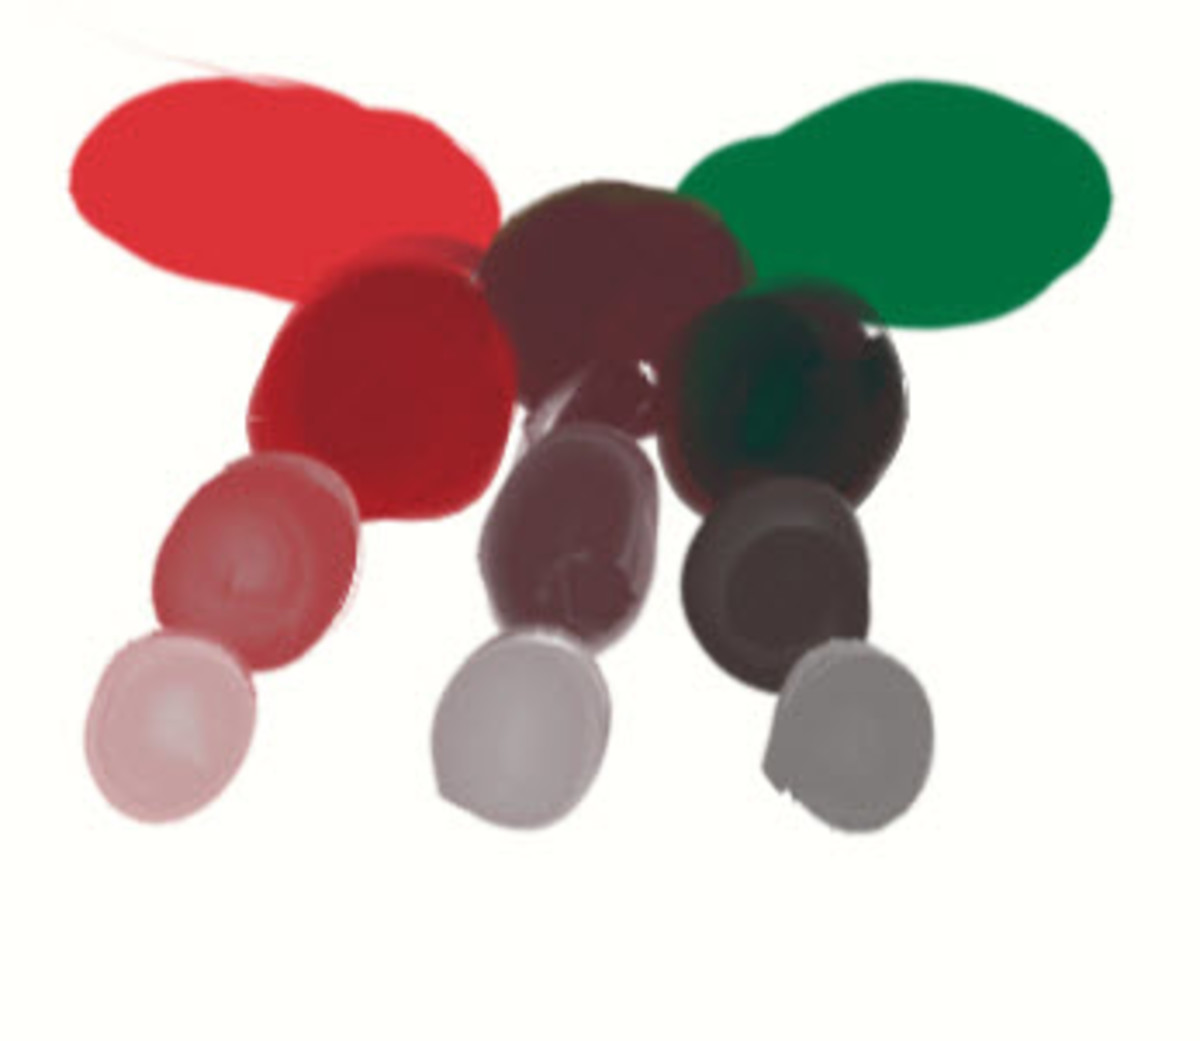 Red and Green to Make Gray and Brown